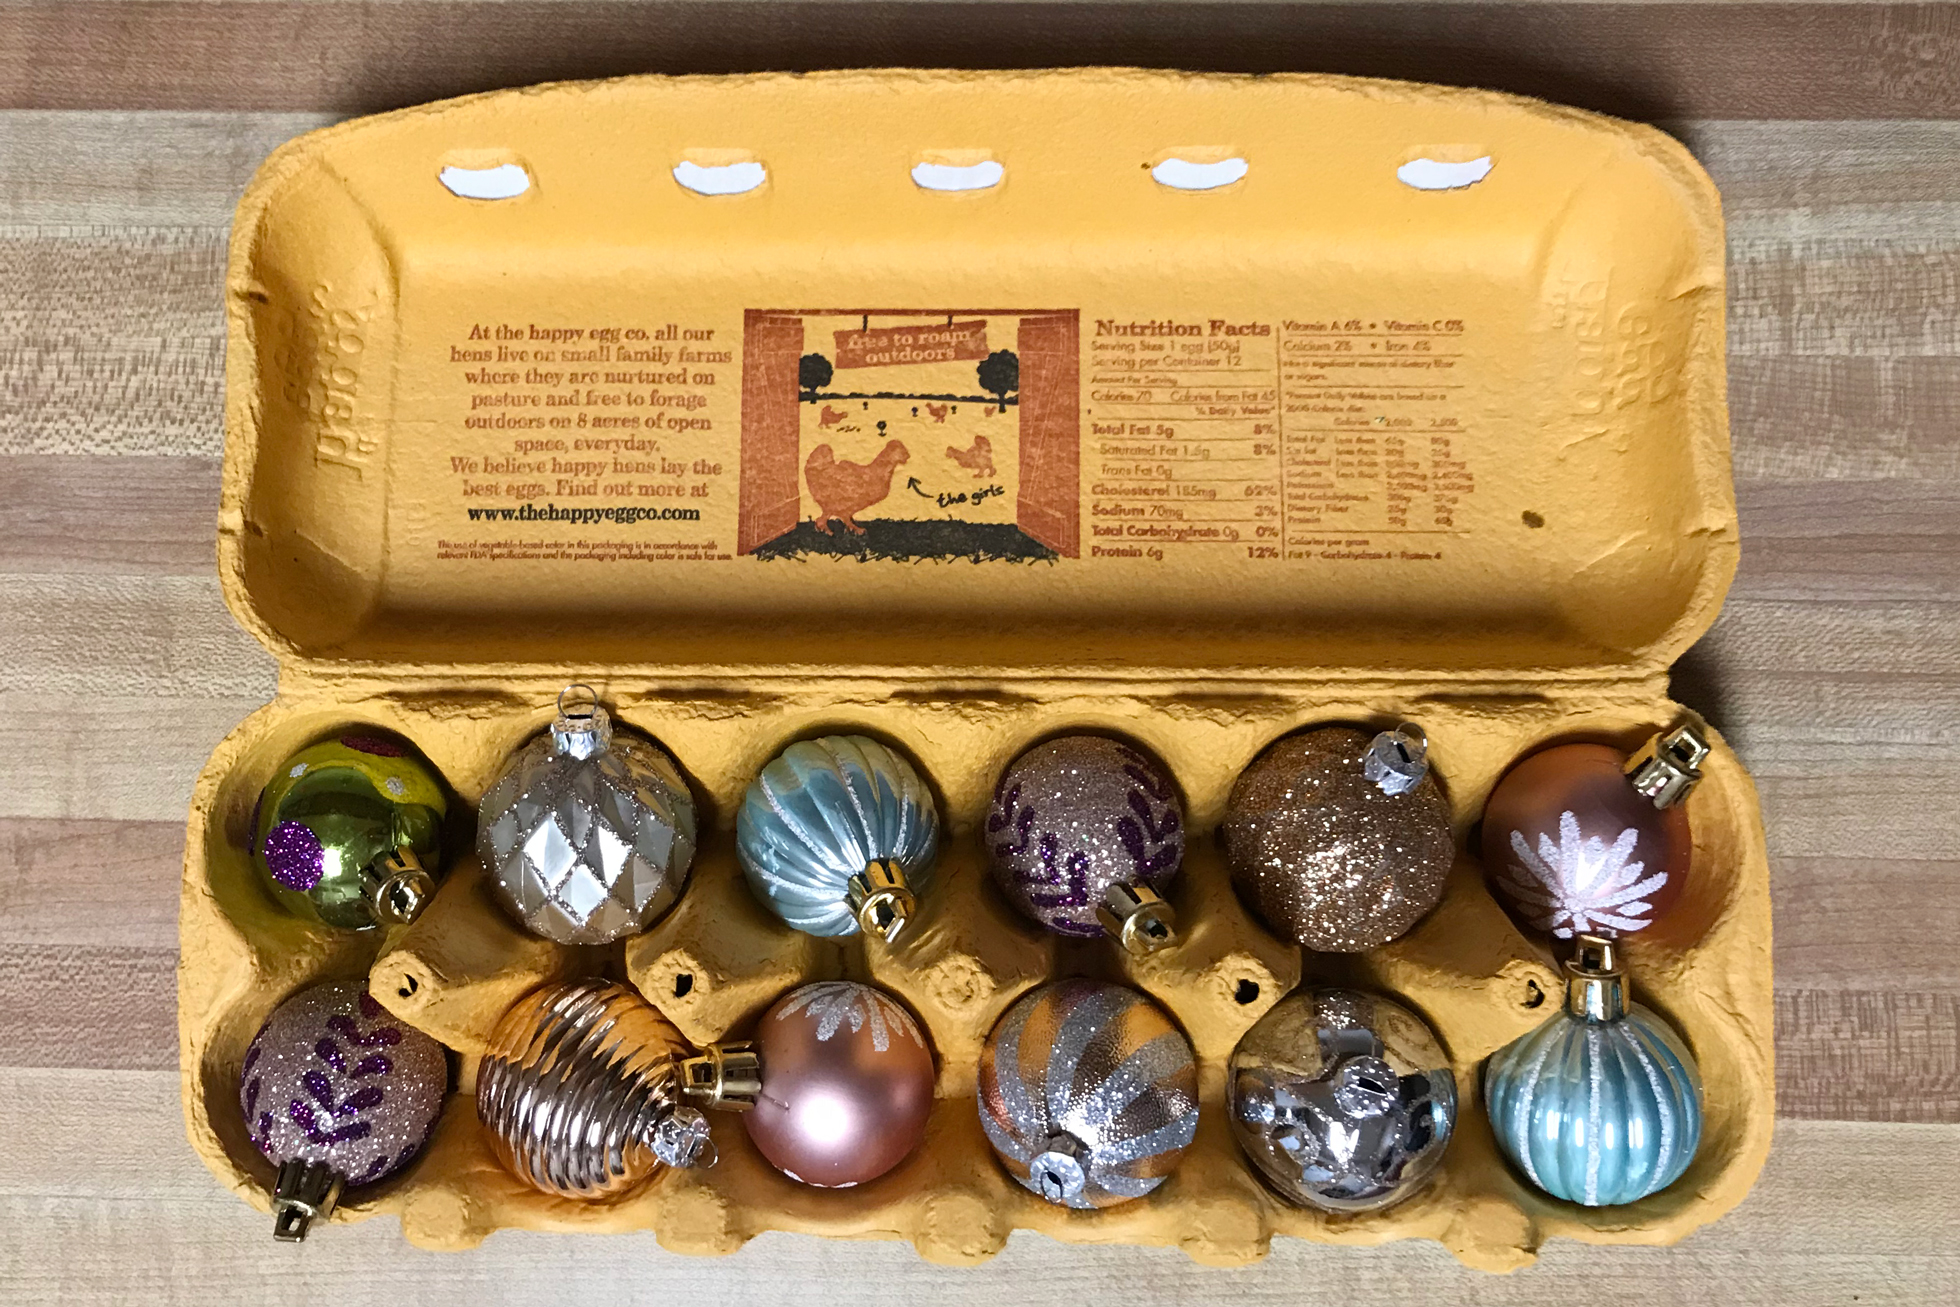 Small colorful ornaments in a yellow egg carton